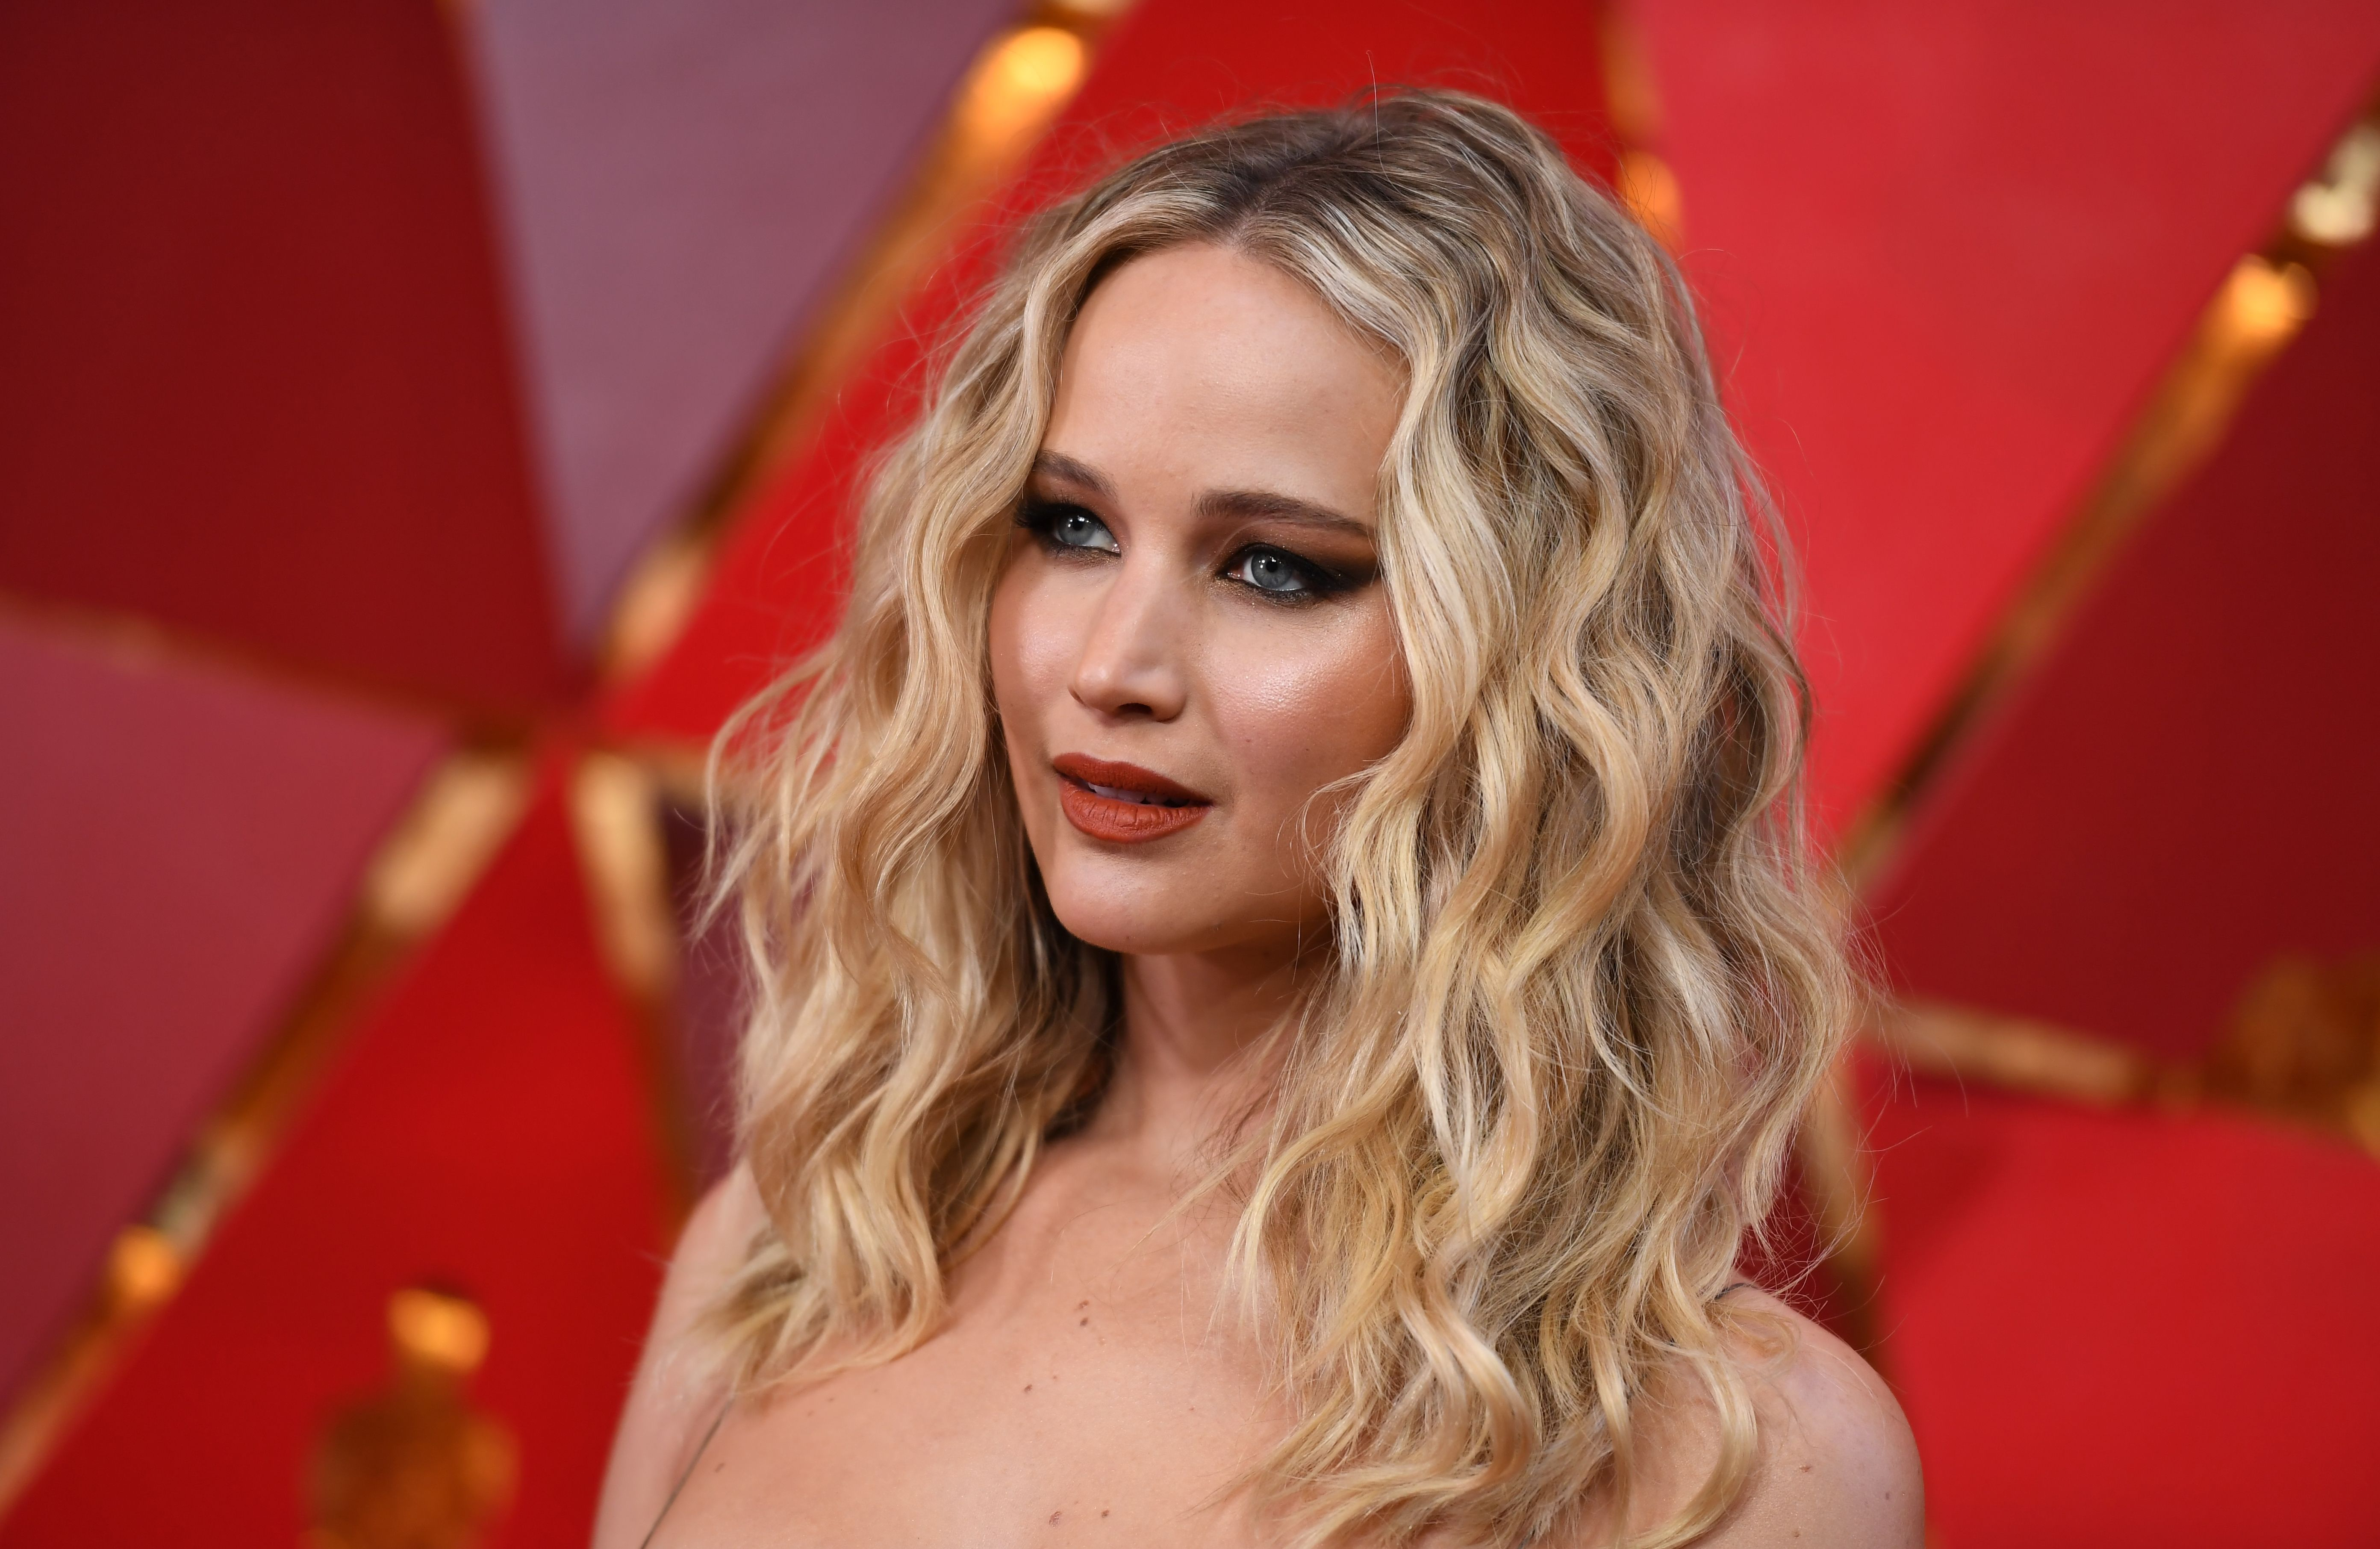 Jennifer Lawrence's first Netflix film is on the way